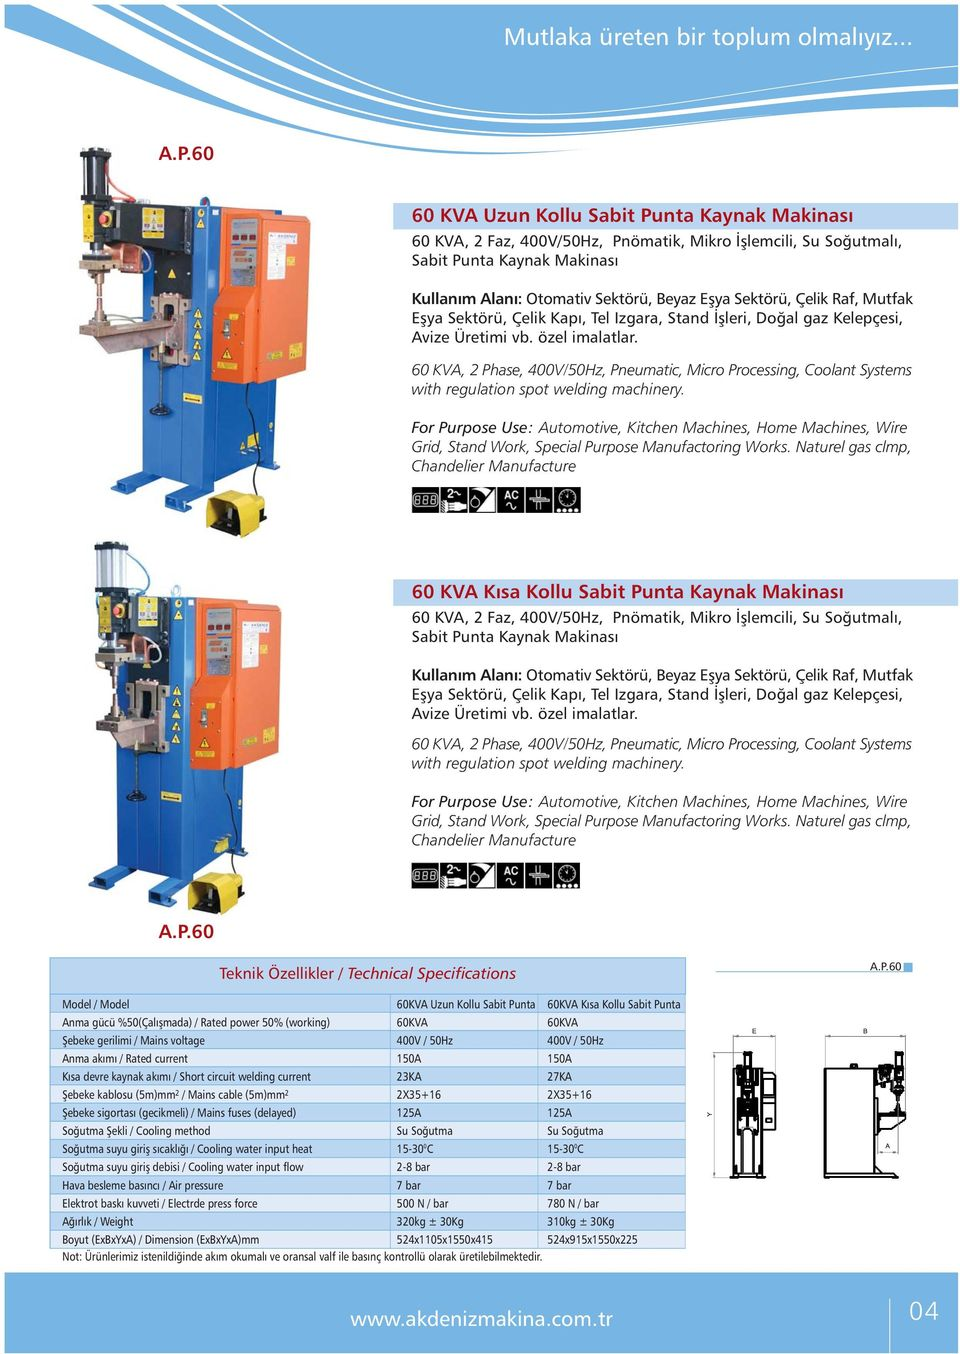 60 KVA, 2 Phase, 400V/50Hz, Pneumatic, Micro Processing, Coolant Systems with regulation spot welding machinery. Grid, Stand Work, Special Purpose Manufactoring Works.